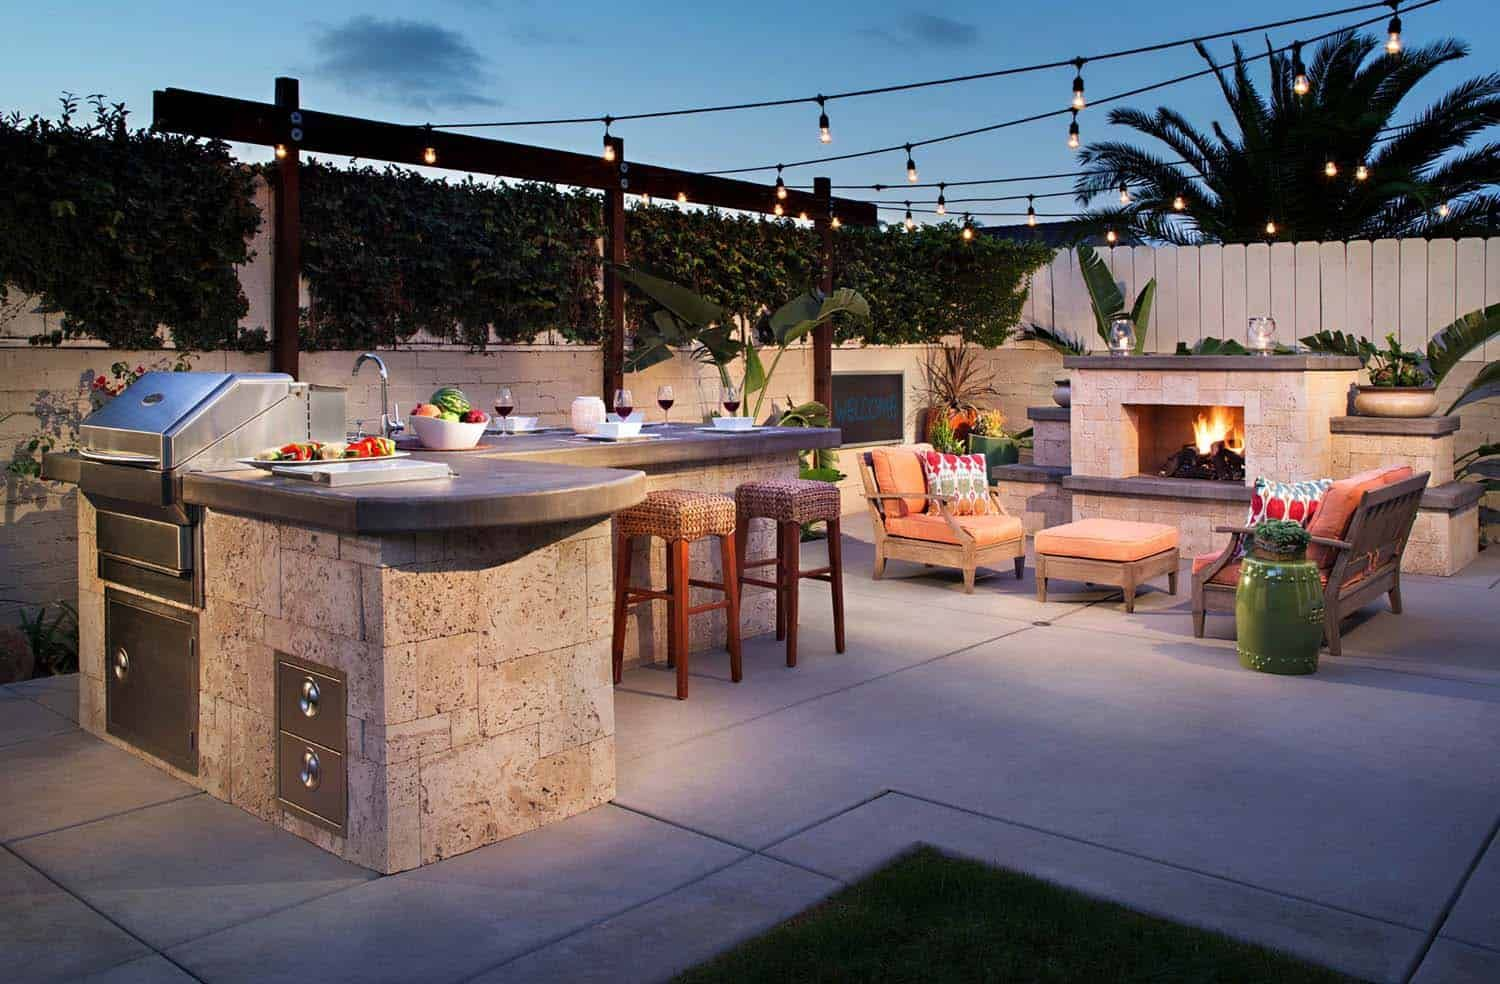 38 Absolutely Fantastic Outdoor Kitchen Ideas For Dining Al Fresco 1 Kindesign Inspiring Creativity And Spreading Fresh Ideas Across The Globe Outdoor Kitchen Plans Cozy Backyard Backyard Kitchen